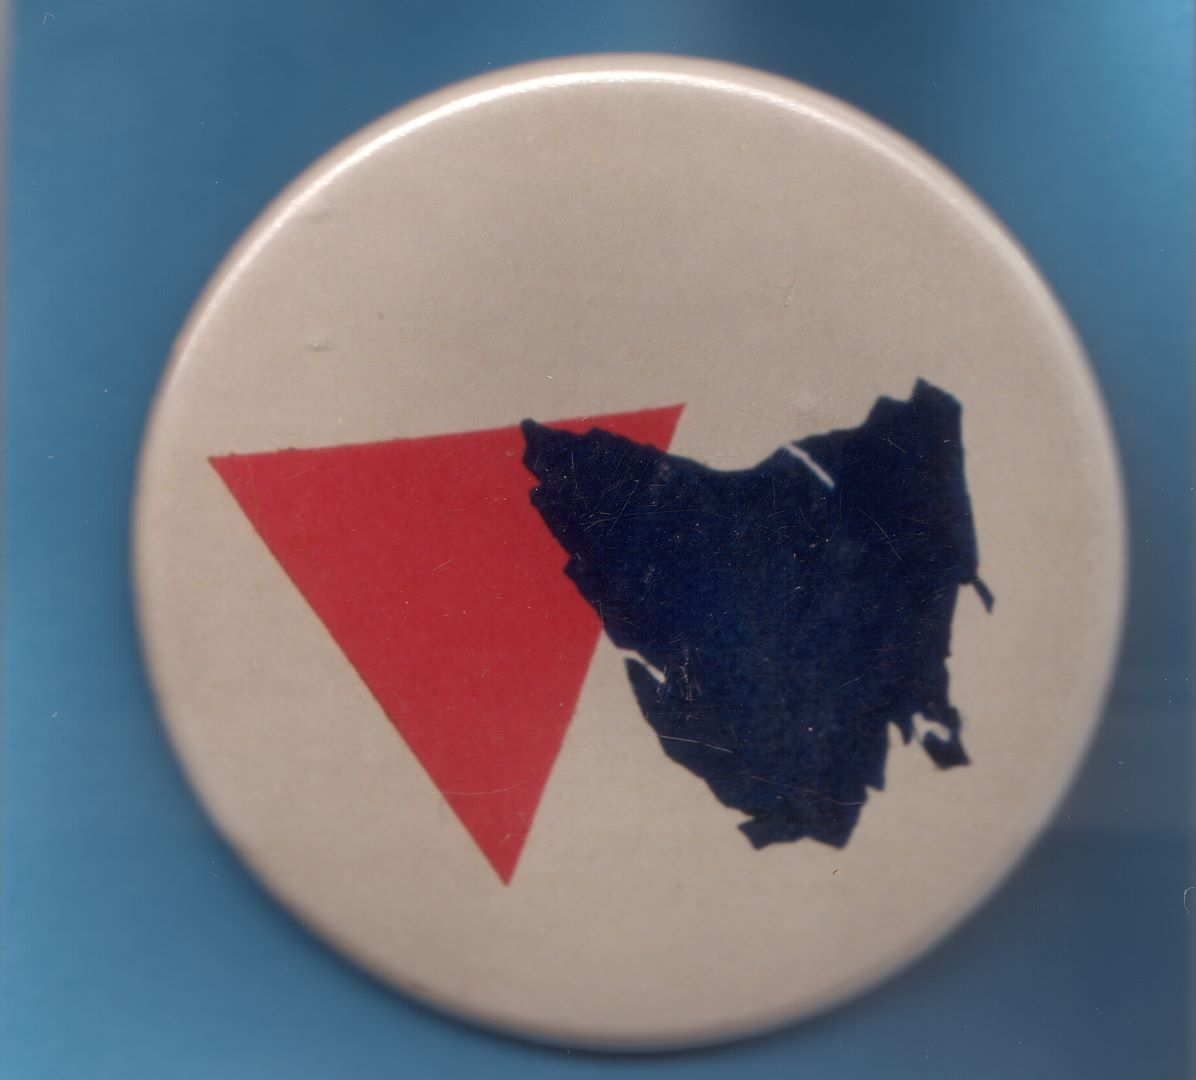 [Badge depicting a pink triangle and map of Tasmania] - Tasmanian Gay and Lesbian Rights Group (TGLRG), c.1988, 2-12-1